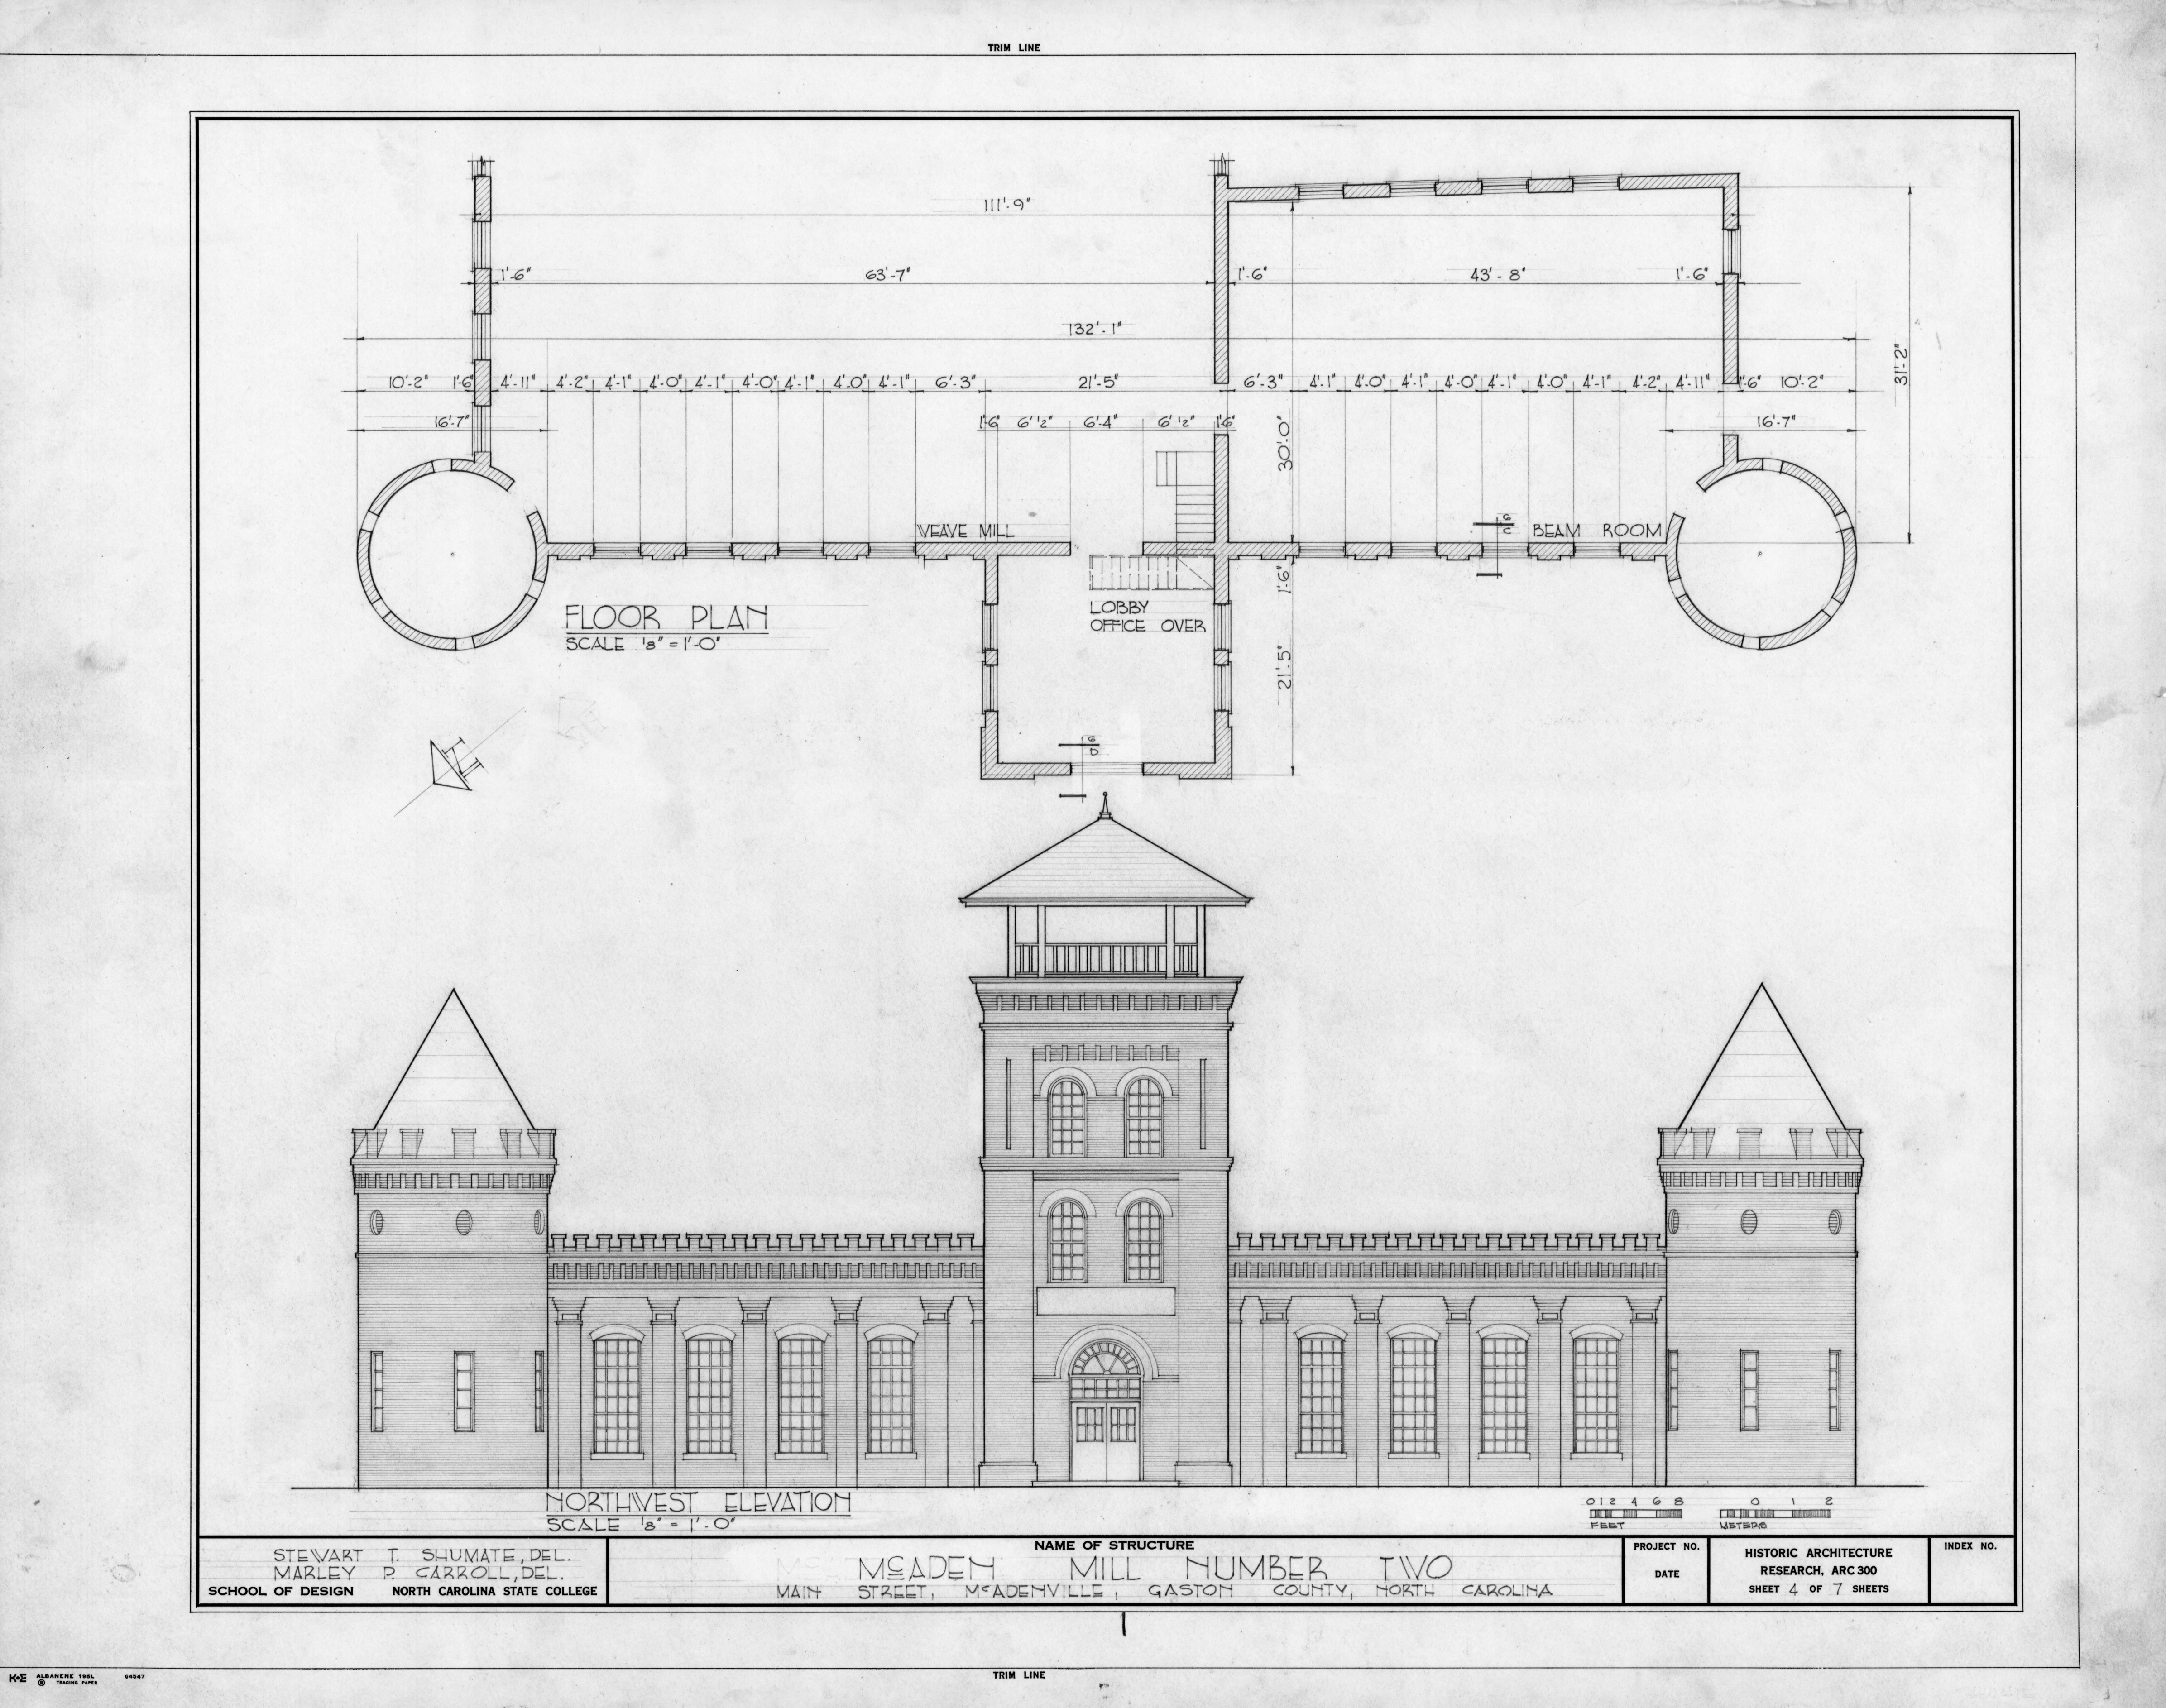 North N Home Plan And Elevation : Northwest elevation and partial floor plan mcaden mill no